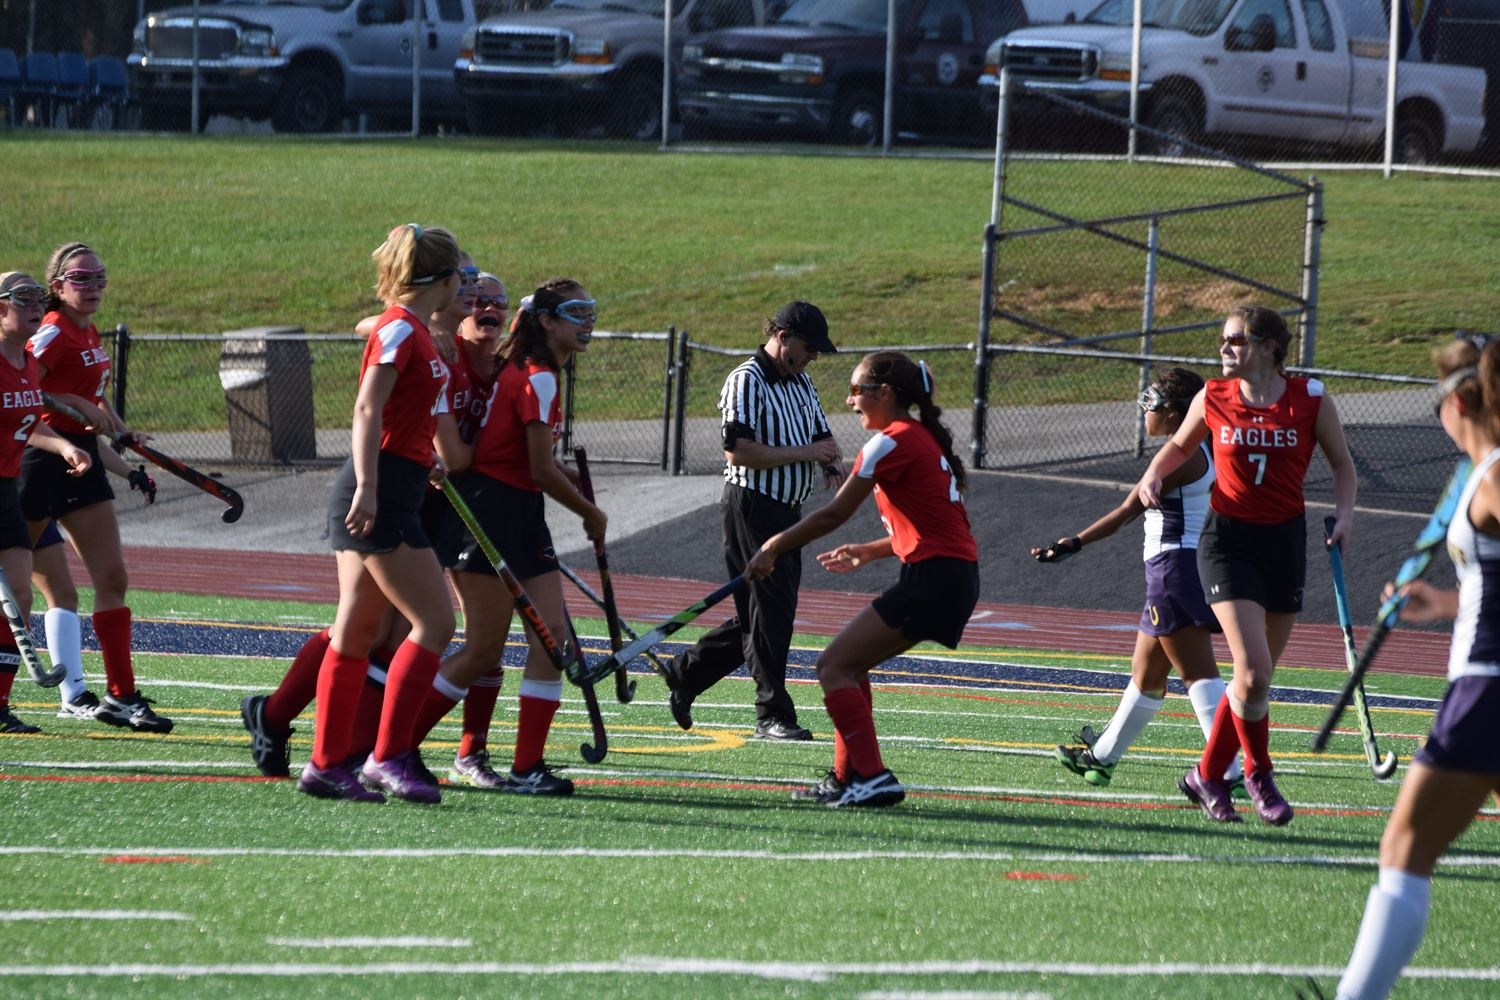 Cumberland Valley High School - Field Hockey